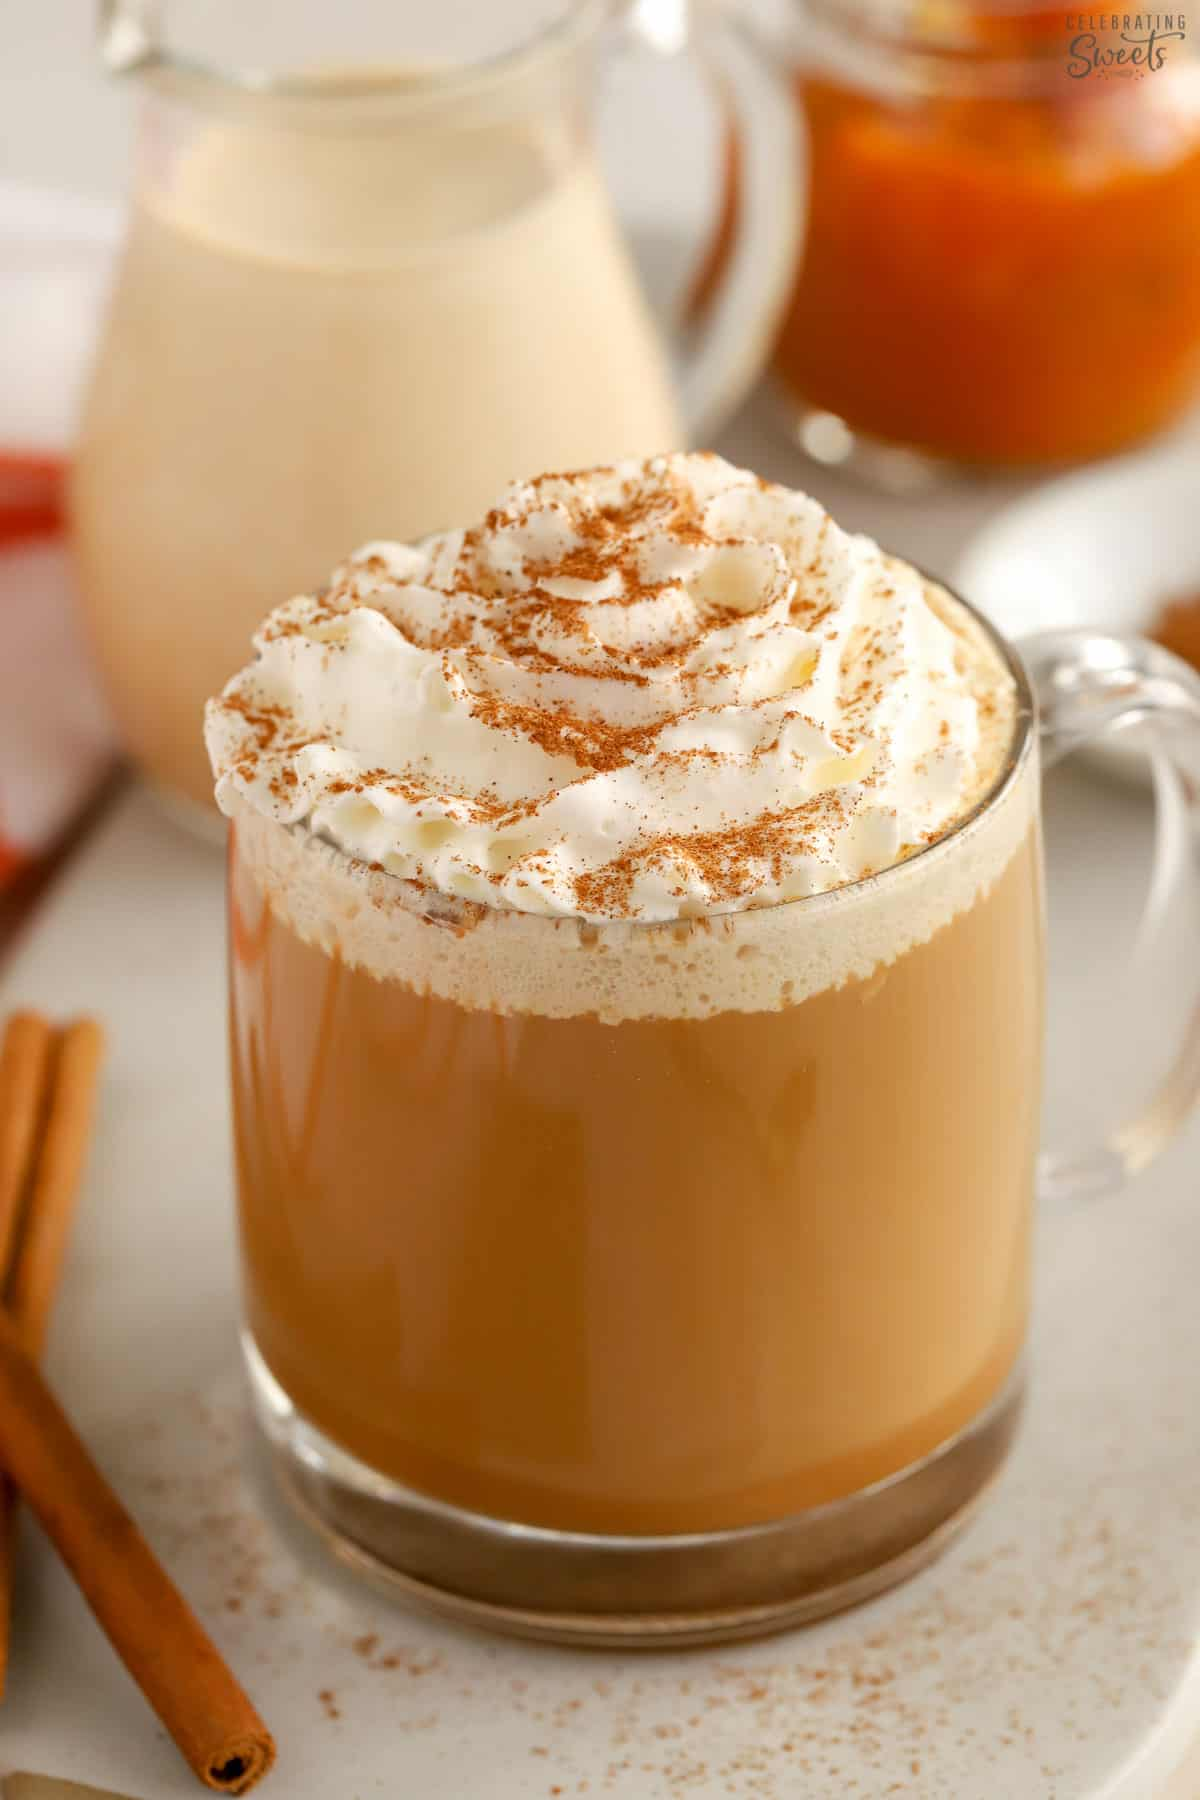 A cup of coffee topped with whipped cream and cinnamon.